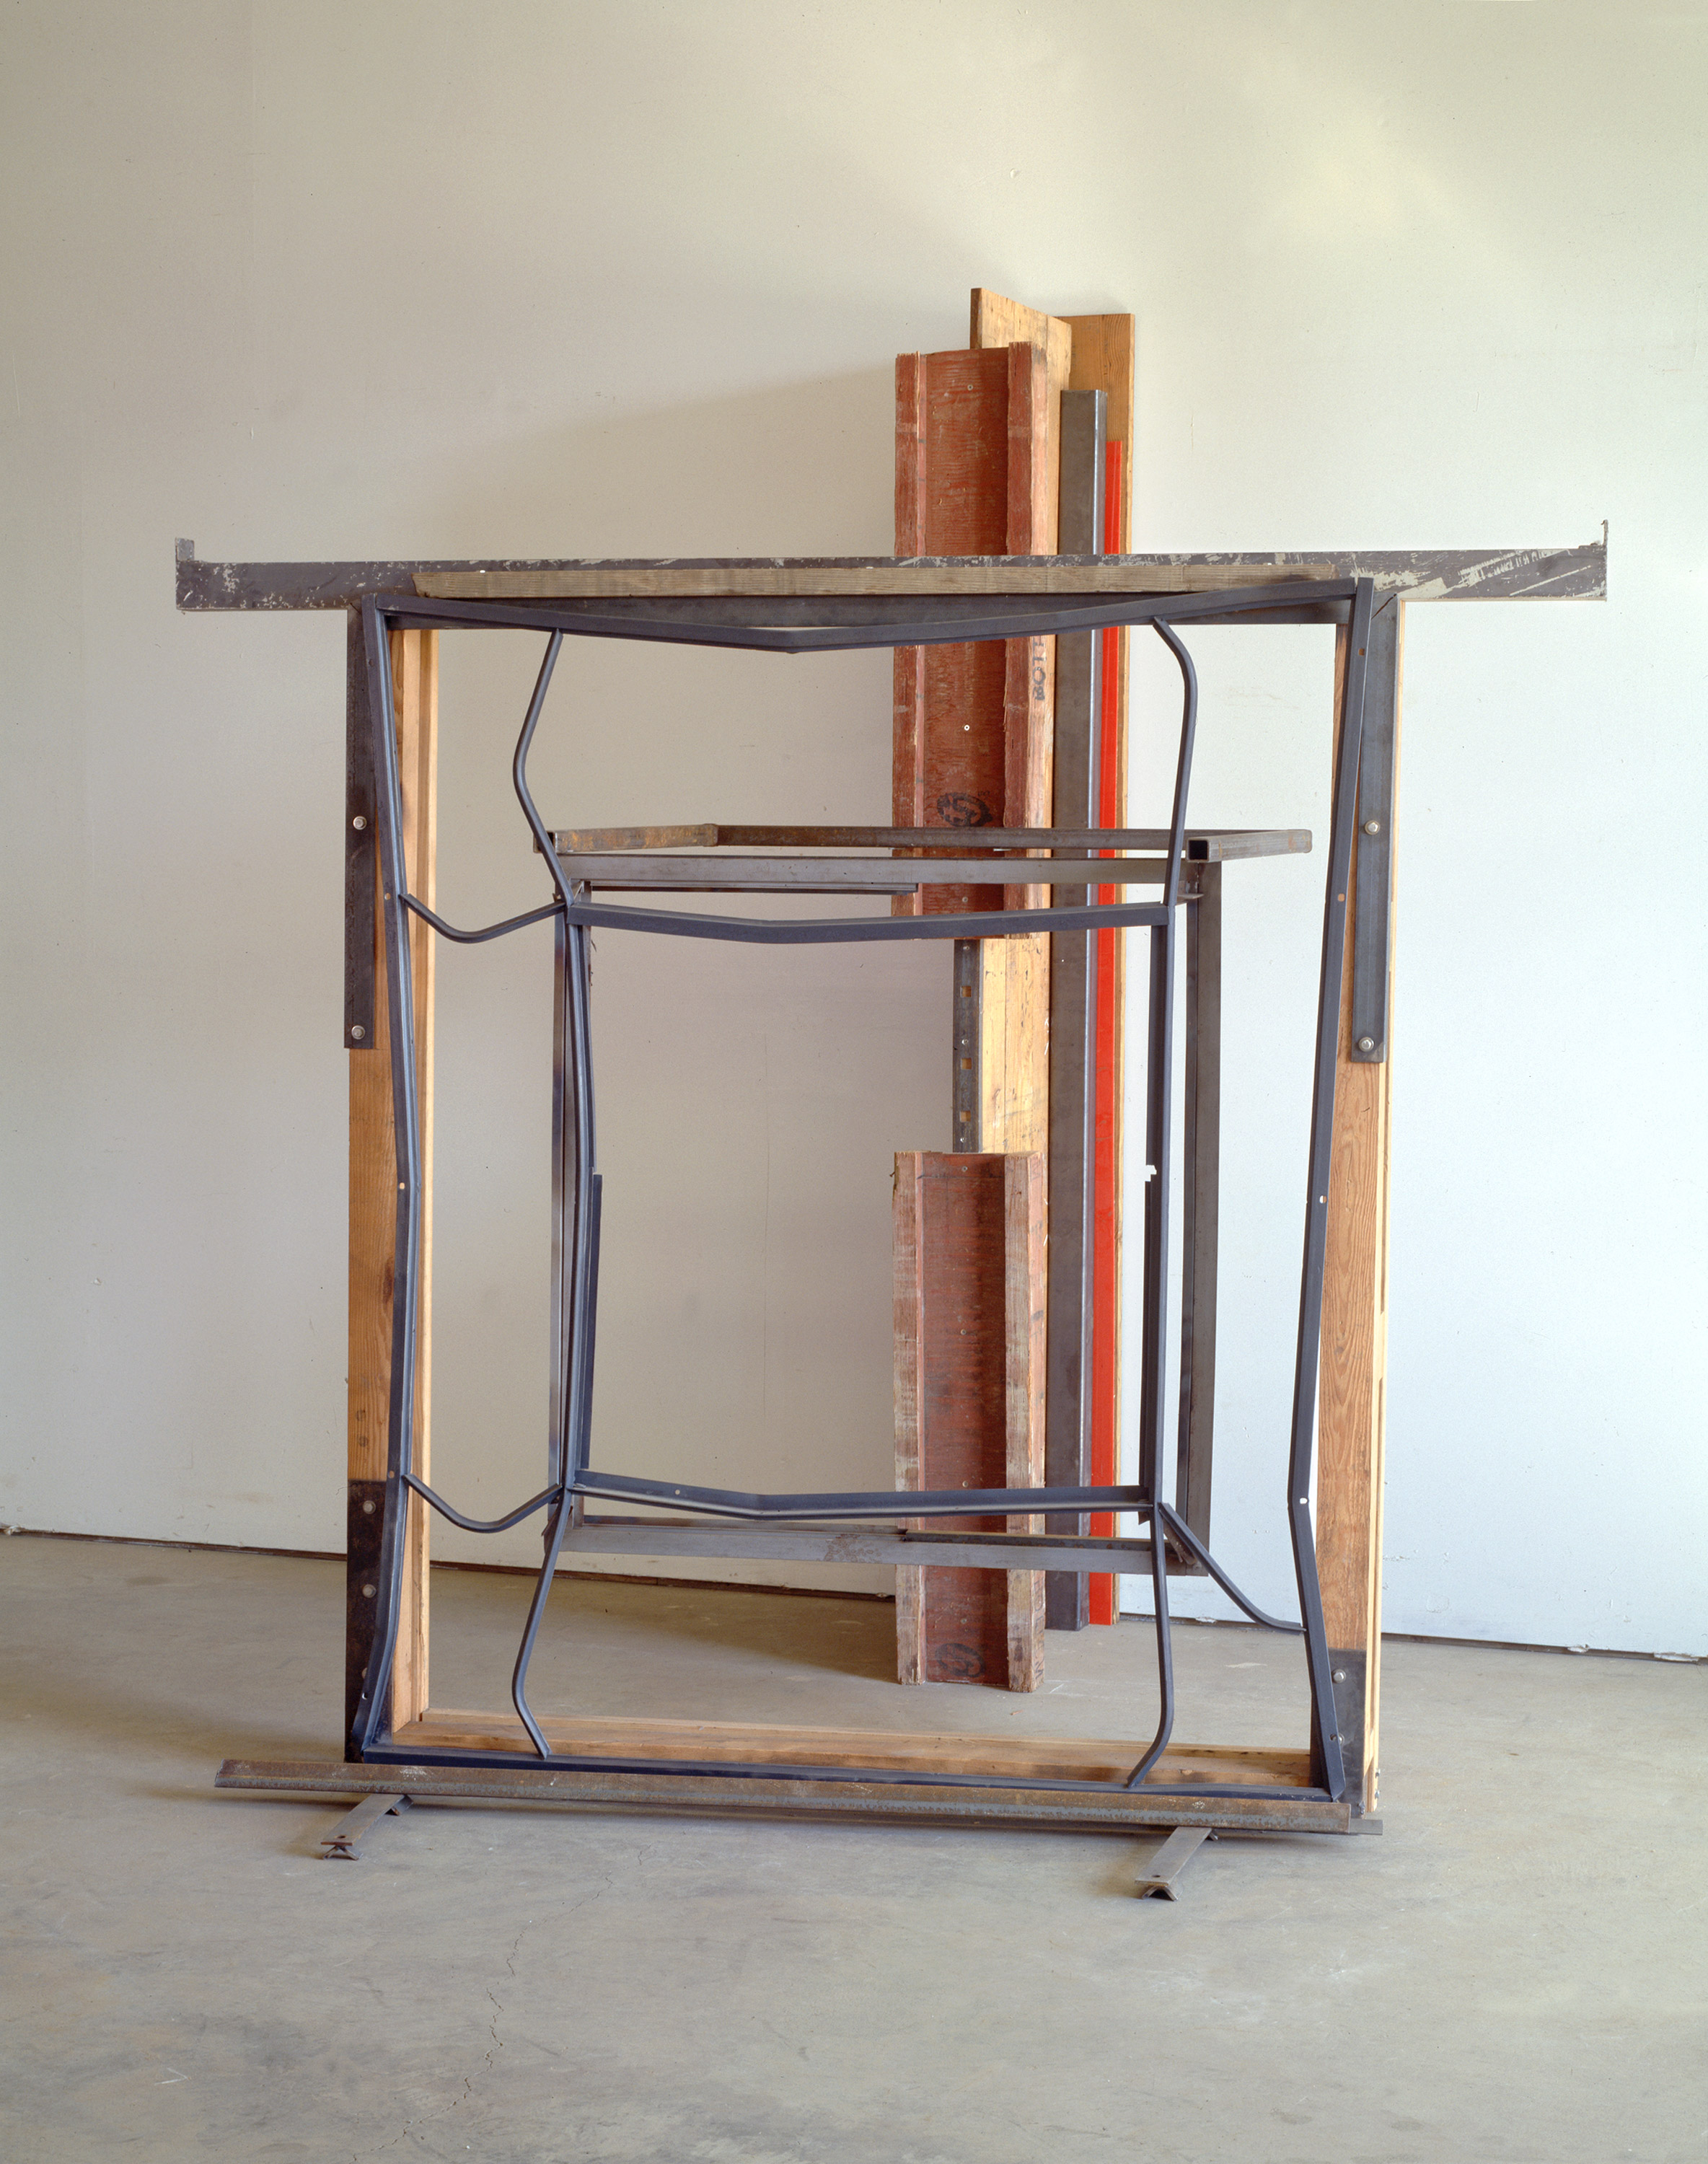 "Index       1990-95   h.100 3/4  "" x w.91 1/4"" x d. 85""  Wood, steel, stainless steel, aluminum, plexiglas"